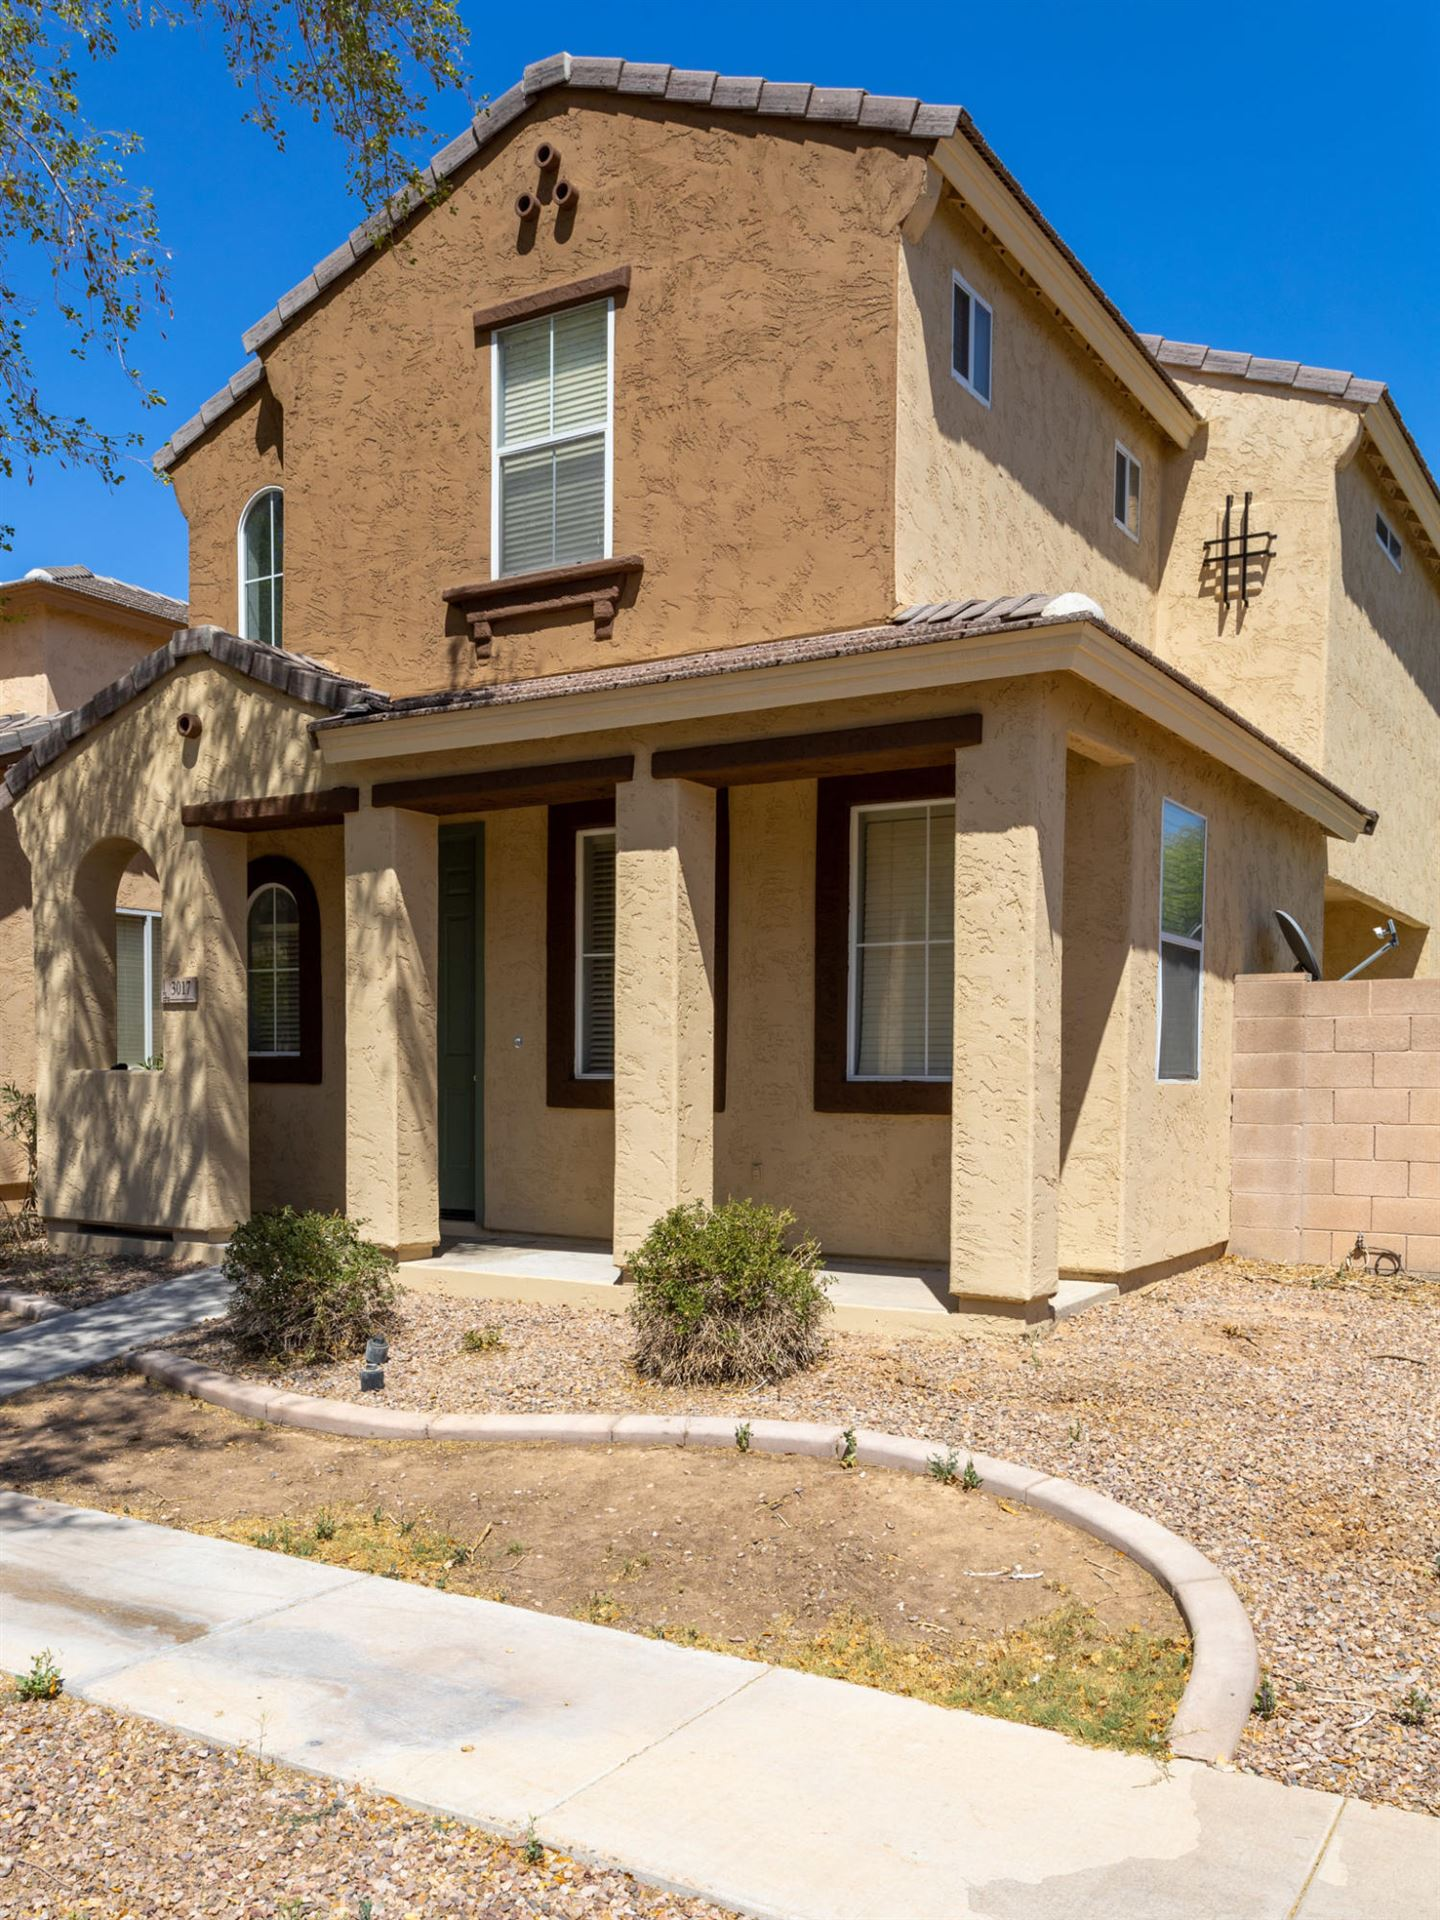 Photo of 3017 S 101ST Lane, Tolleson, AZ 85353 (MLS # 6231573)